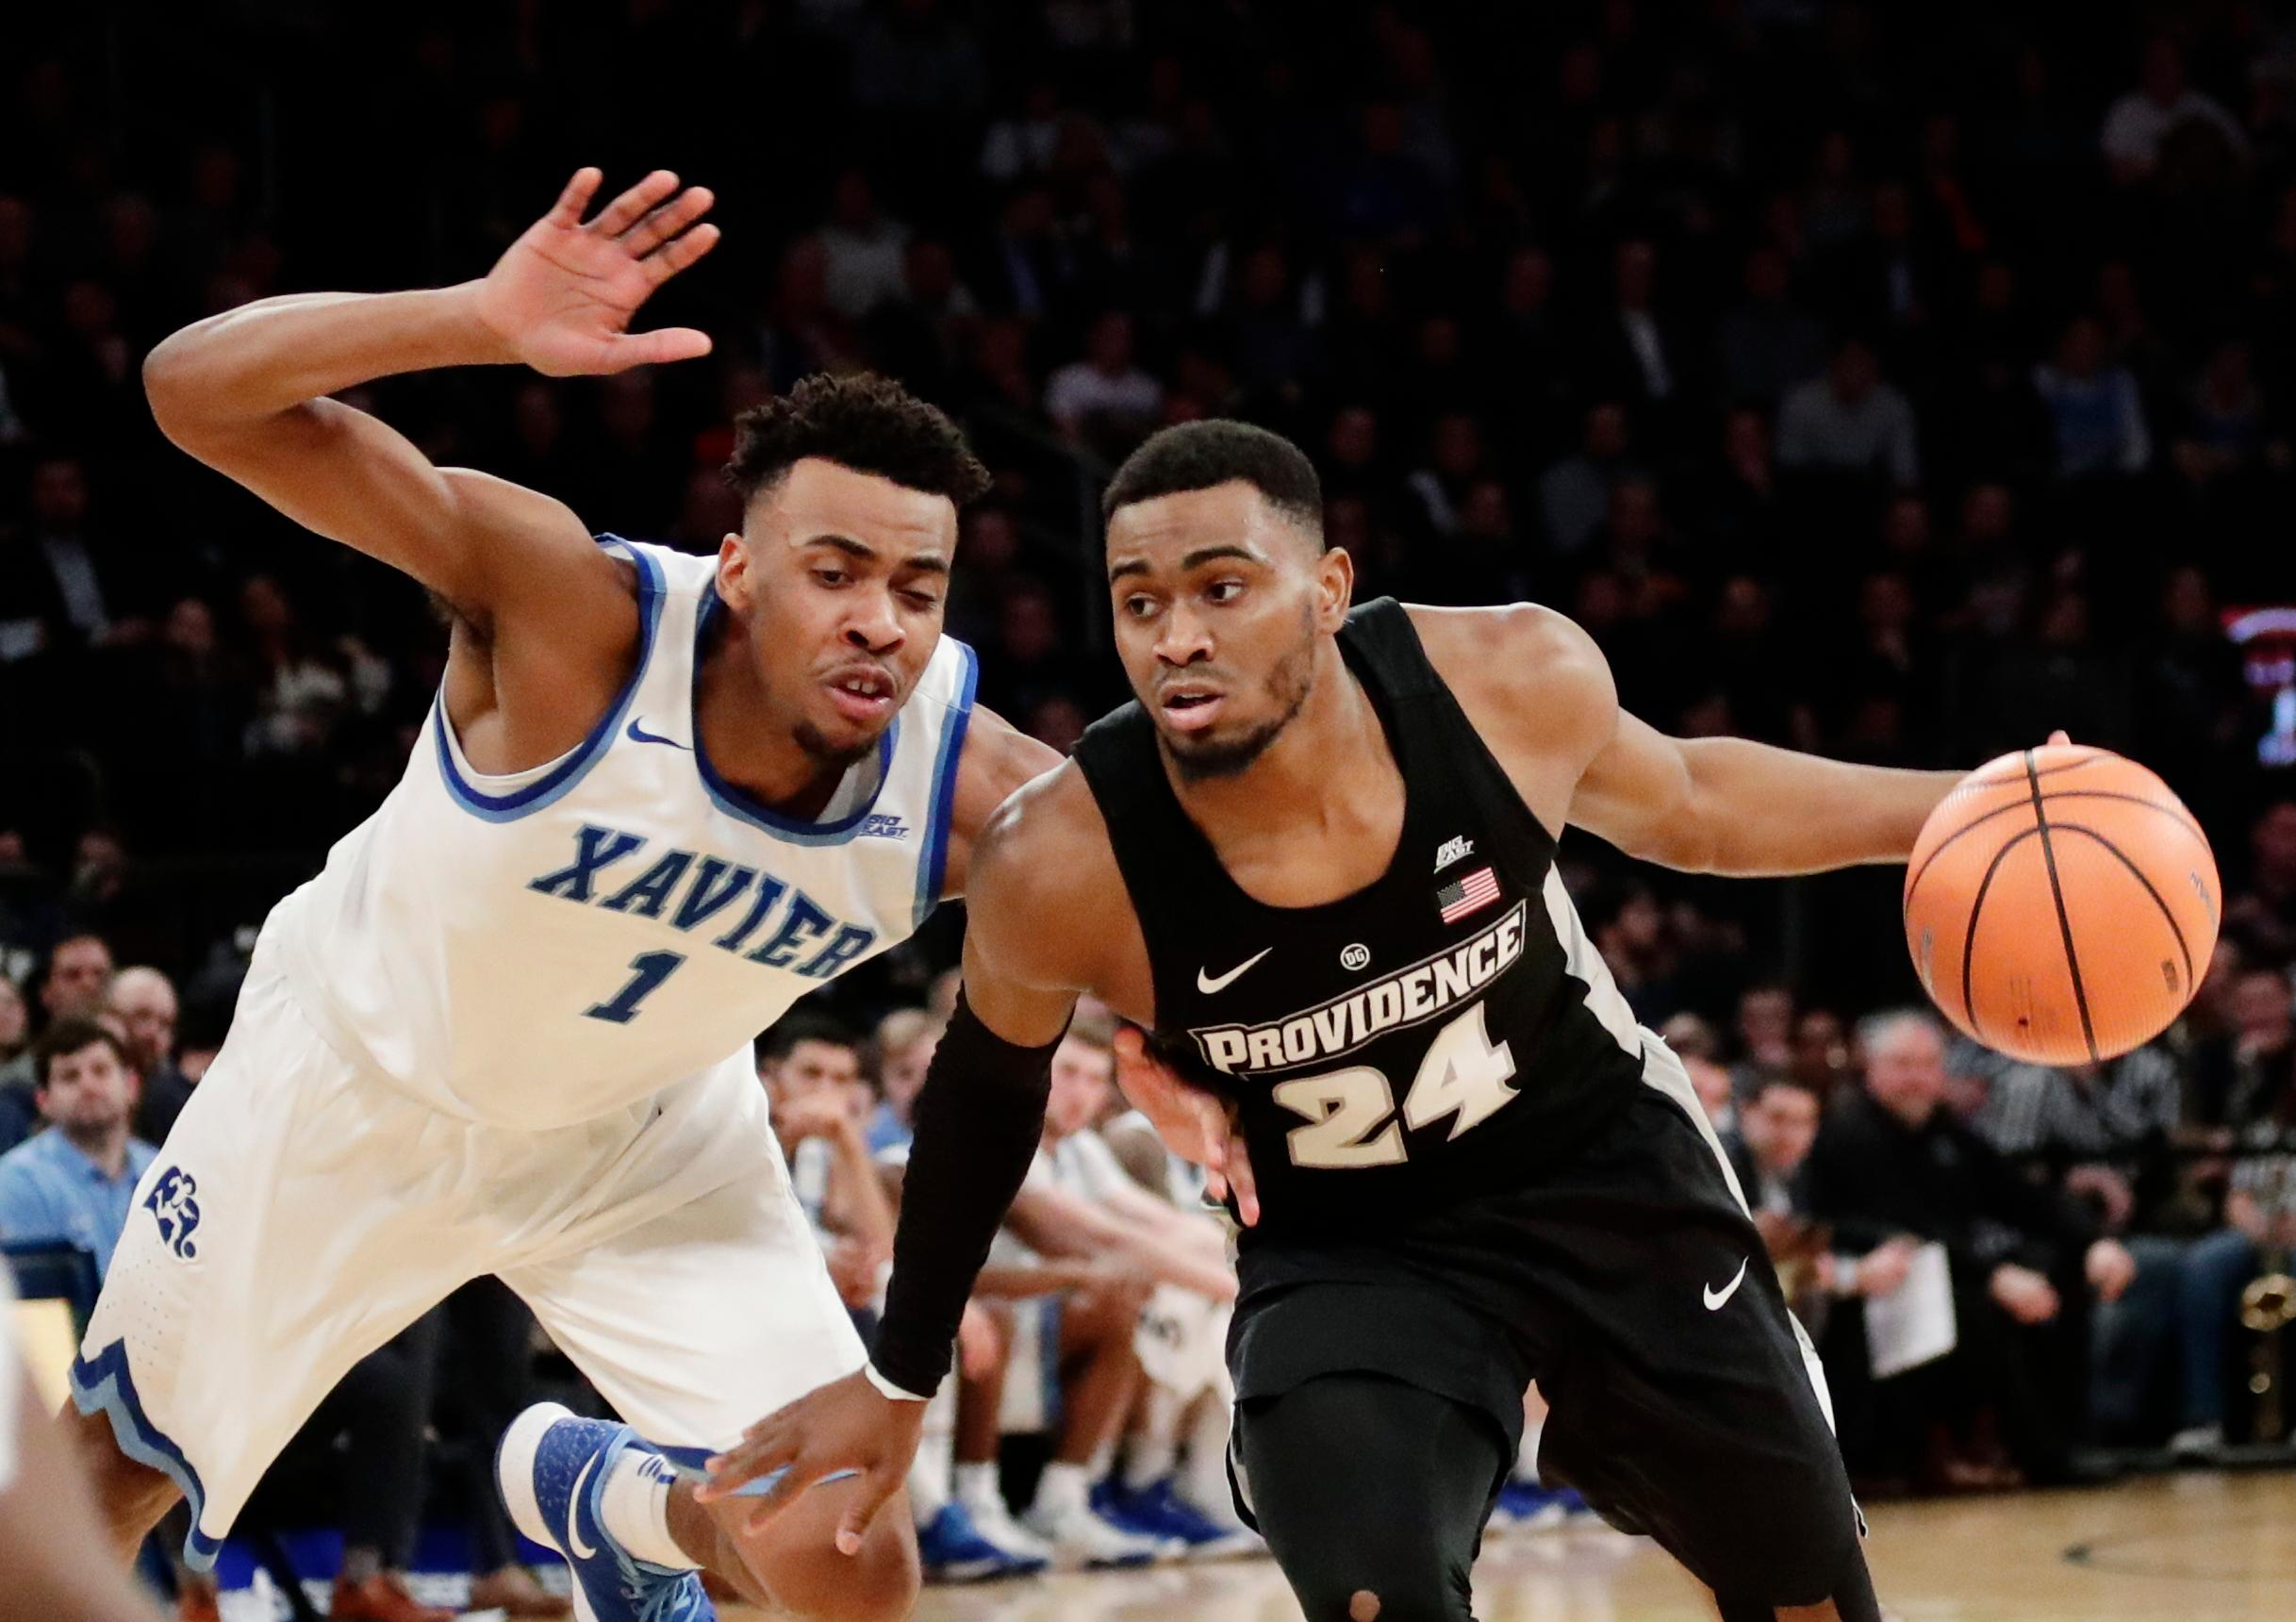 Providence's Kyron Cartwright (24) drives past Xavier's Paul Scruggs (1) during the second half of an NCAA college basketball game in the Big East men's tournament semifinals Friday, March 9, 2018, in New York. (AP Photo/Frank Franklin II)